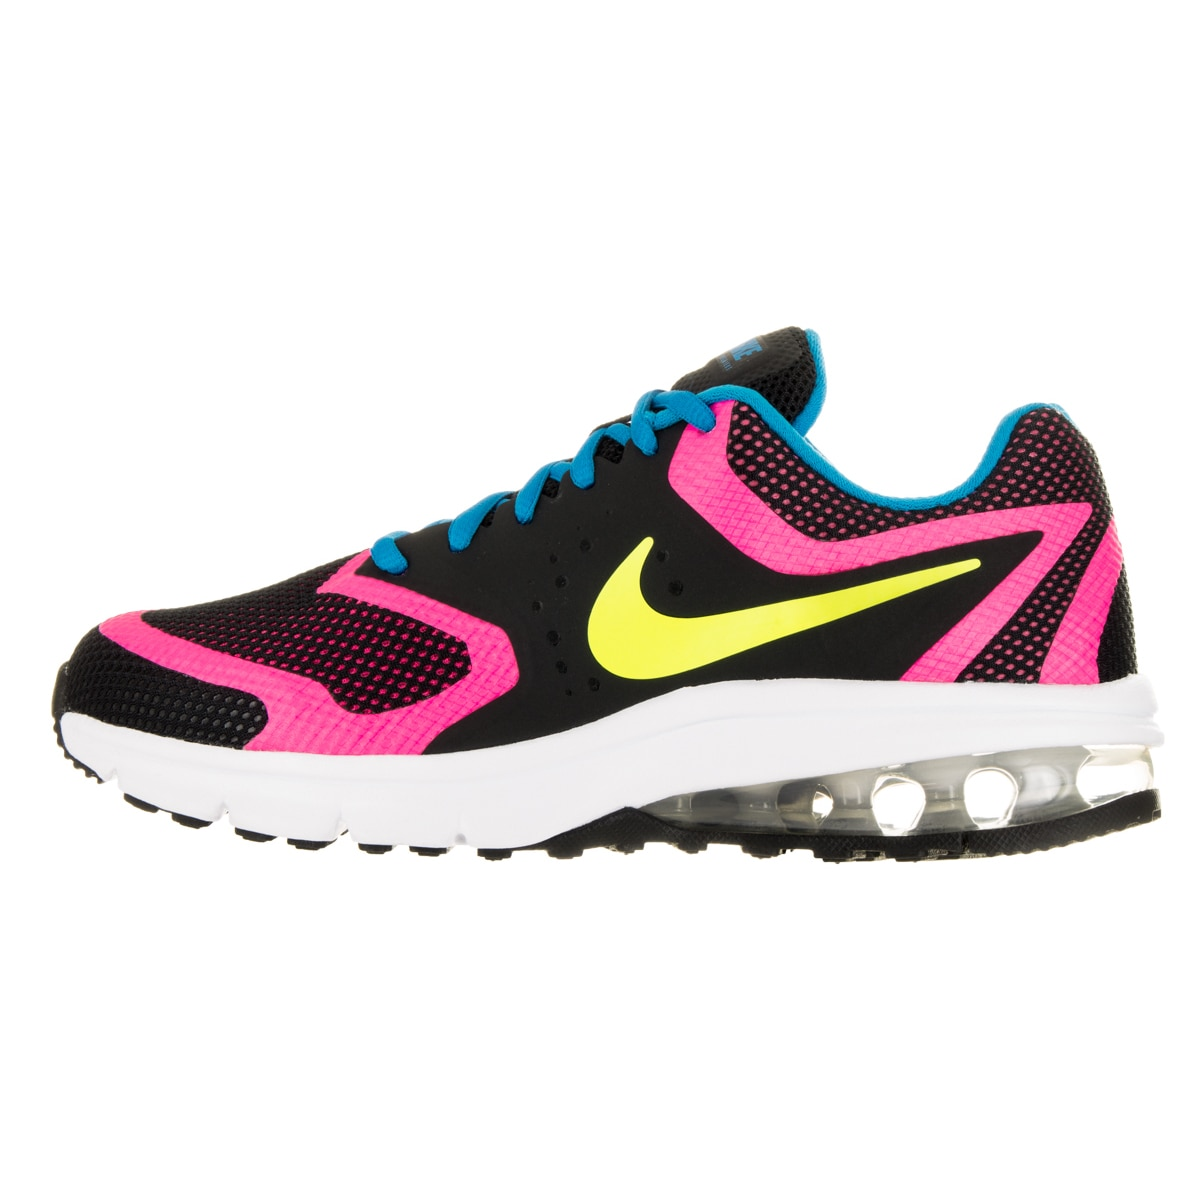 77120c557cf9 Shop Nike Kids Air Max Premiere Run (GS) Black Volt Pink Pow Photo Blue  Running Shoe - Free Shipping Today - Overstock - 13394691